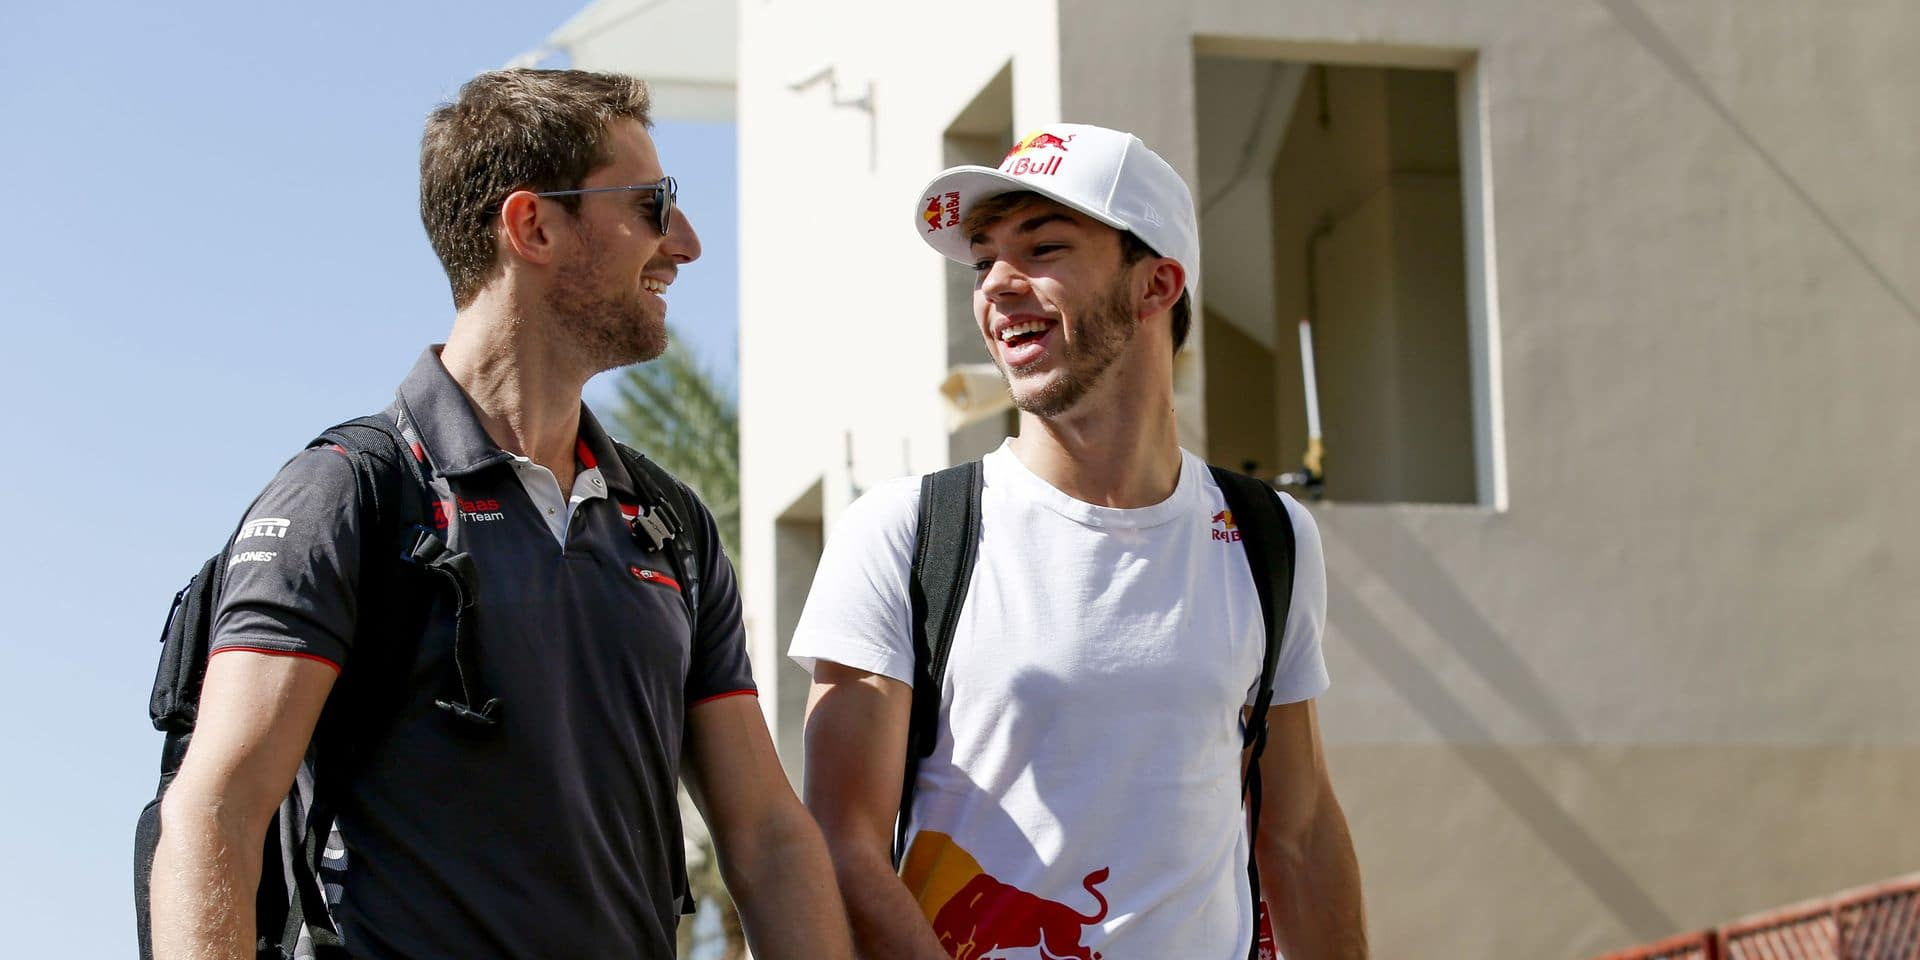 Motorsports: FIA Formula One World Championship 2018, Grand Prix of Abu Dhabi